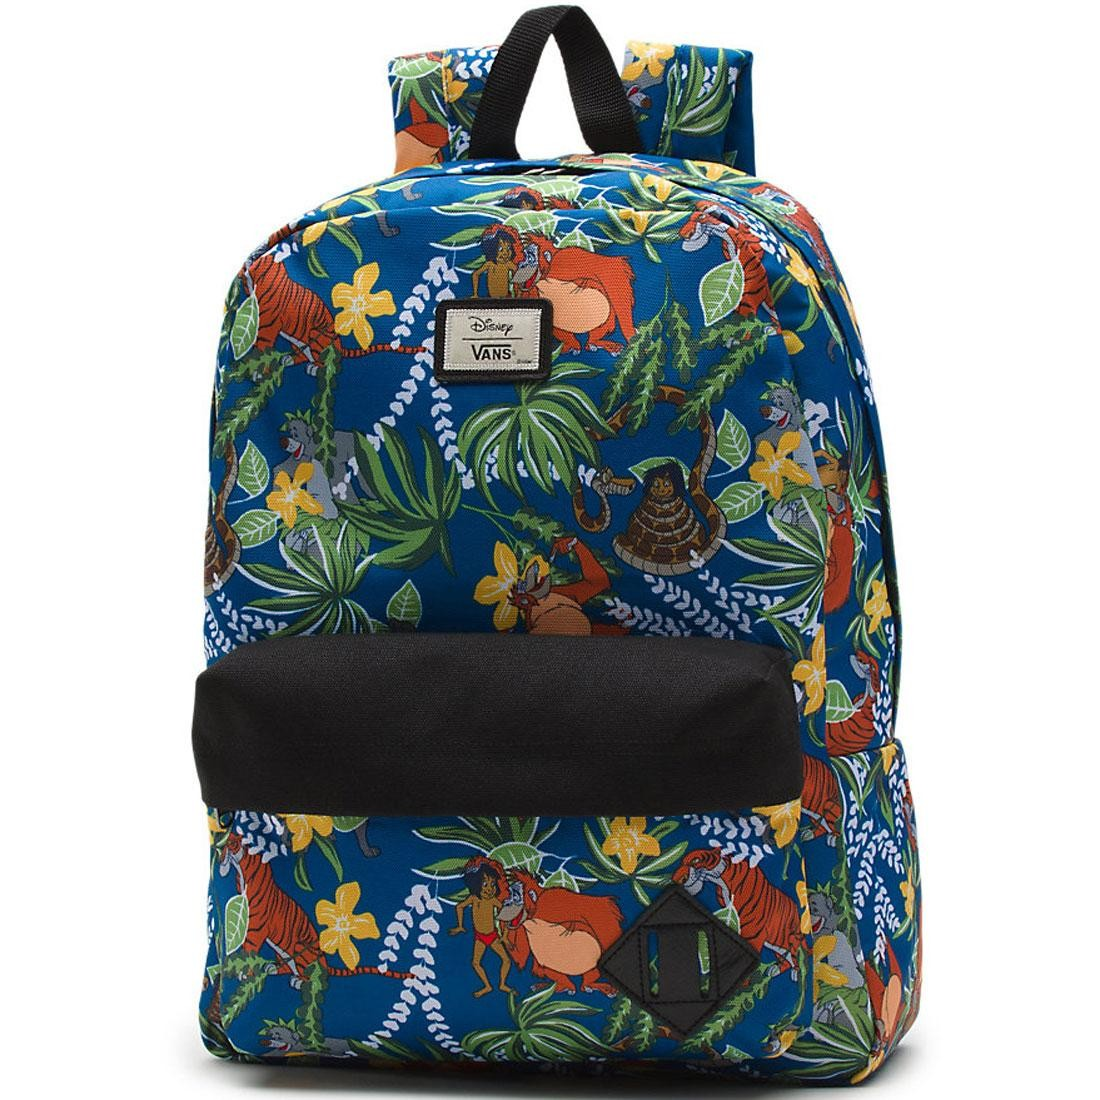 Vans x Disney Old Skool II Backpack - Jungle Book green blue 2e0592bc78589